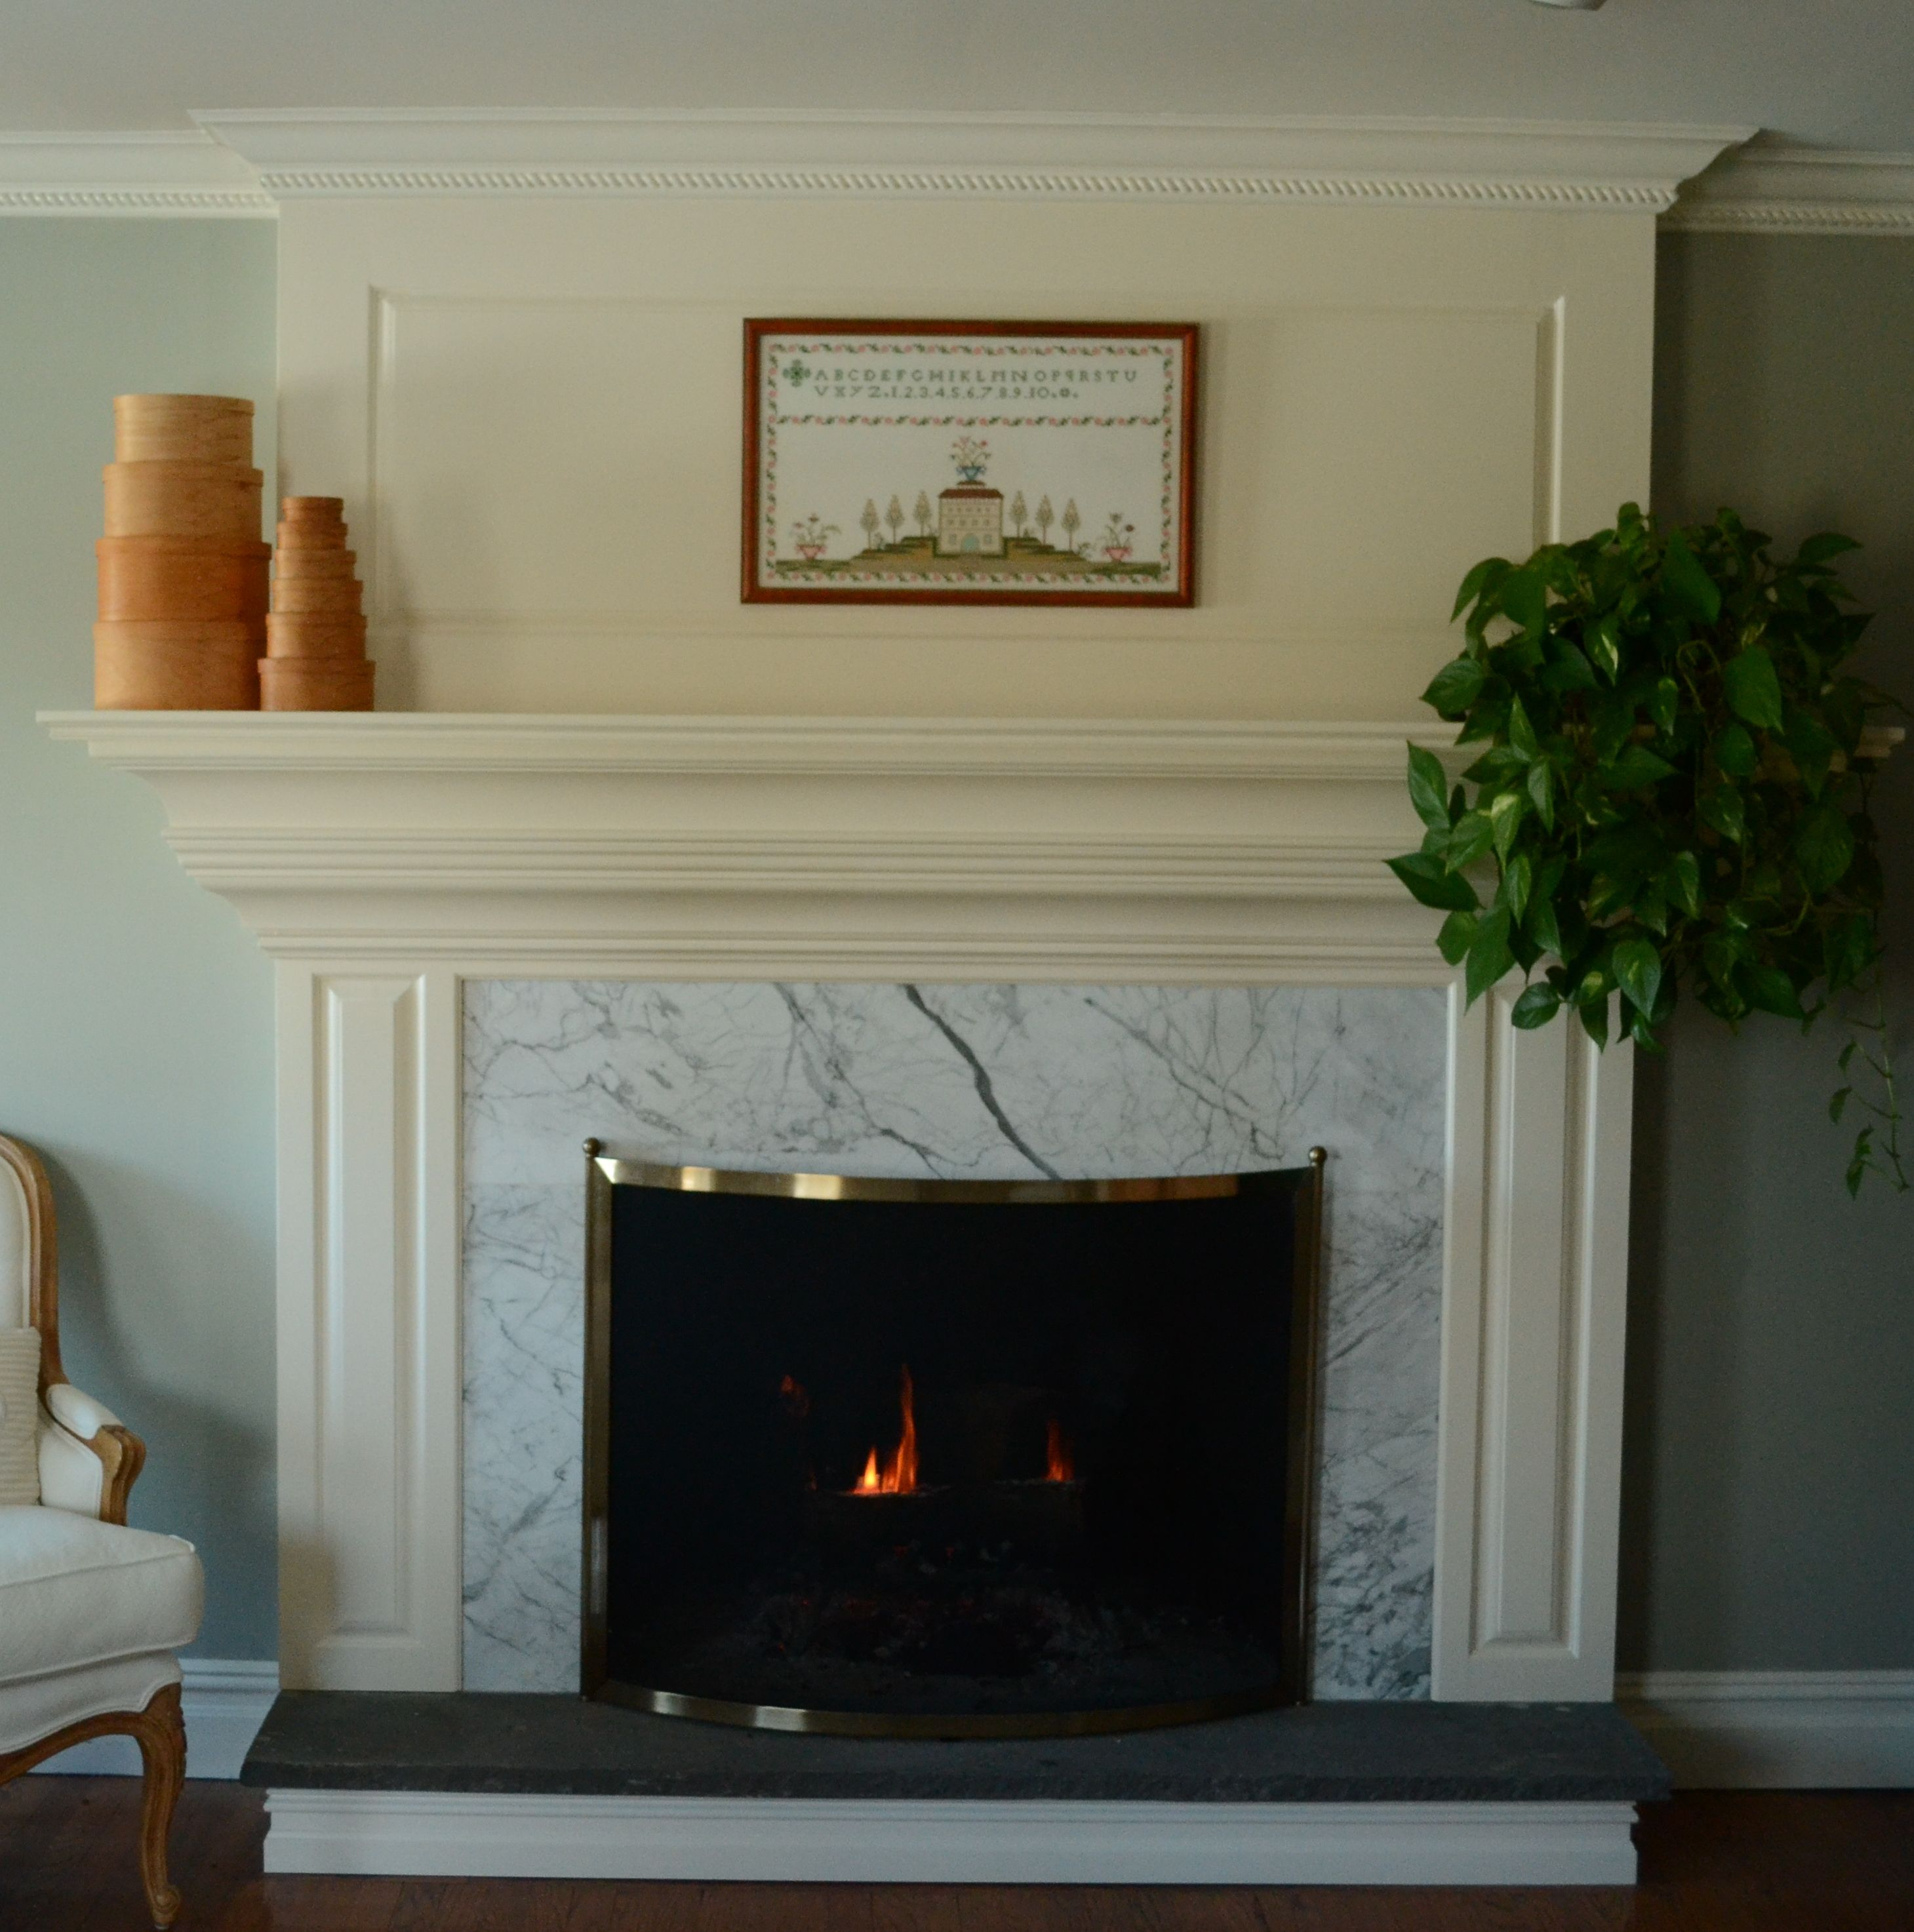 Fireplace Mantel White White Fireplace With White Tile Surround And Black Hearth